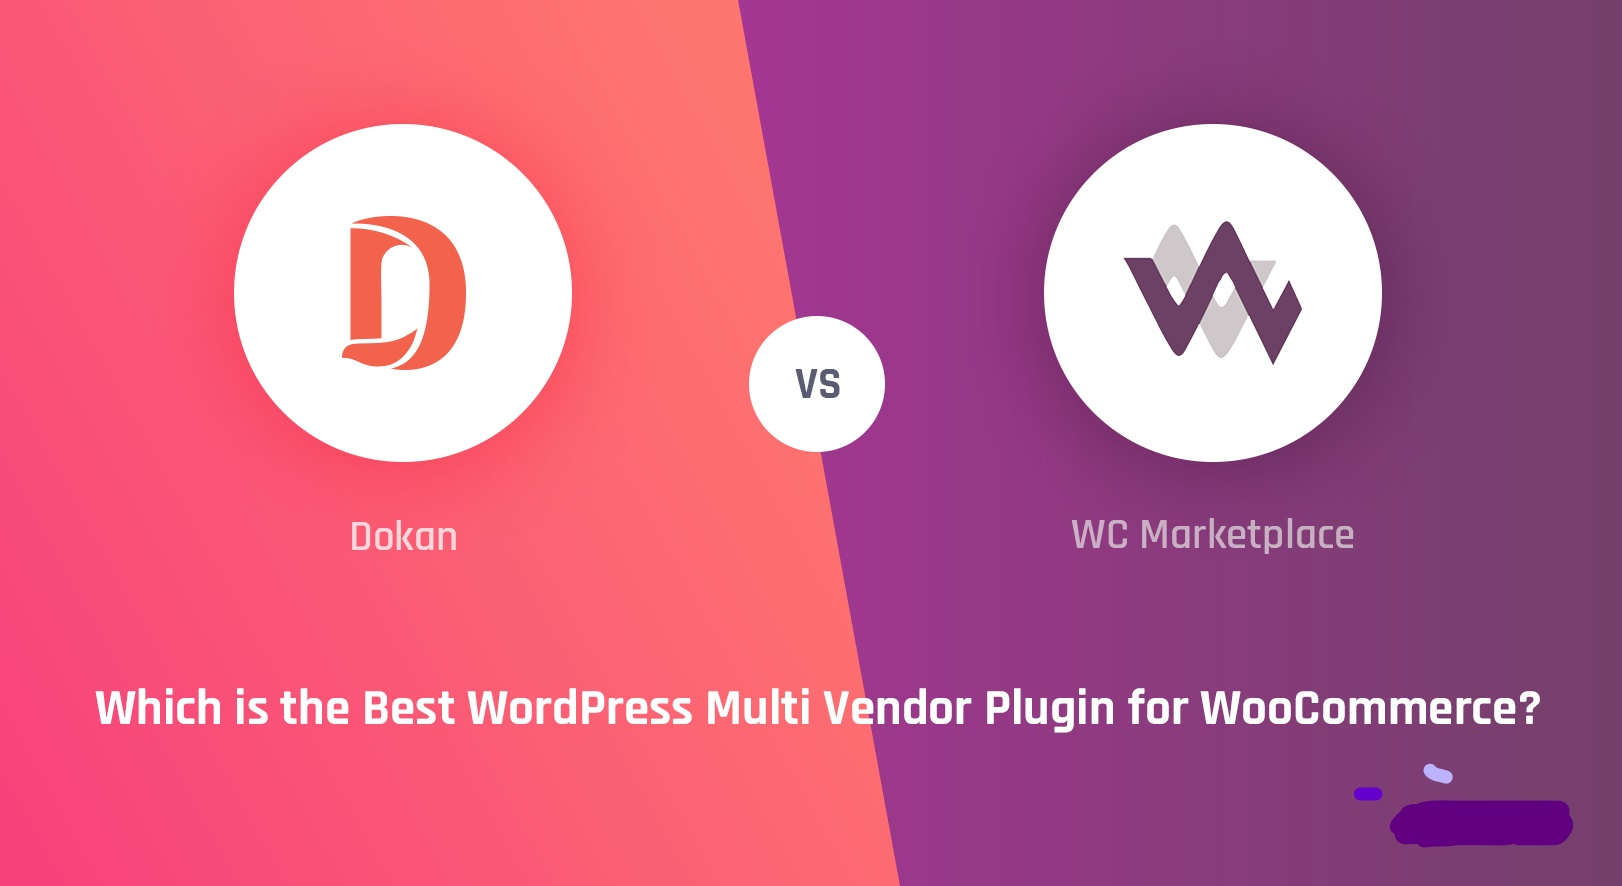 Comparison Between WC Marketplace vs Dokan, the Best Multi Vendor Plugin